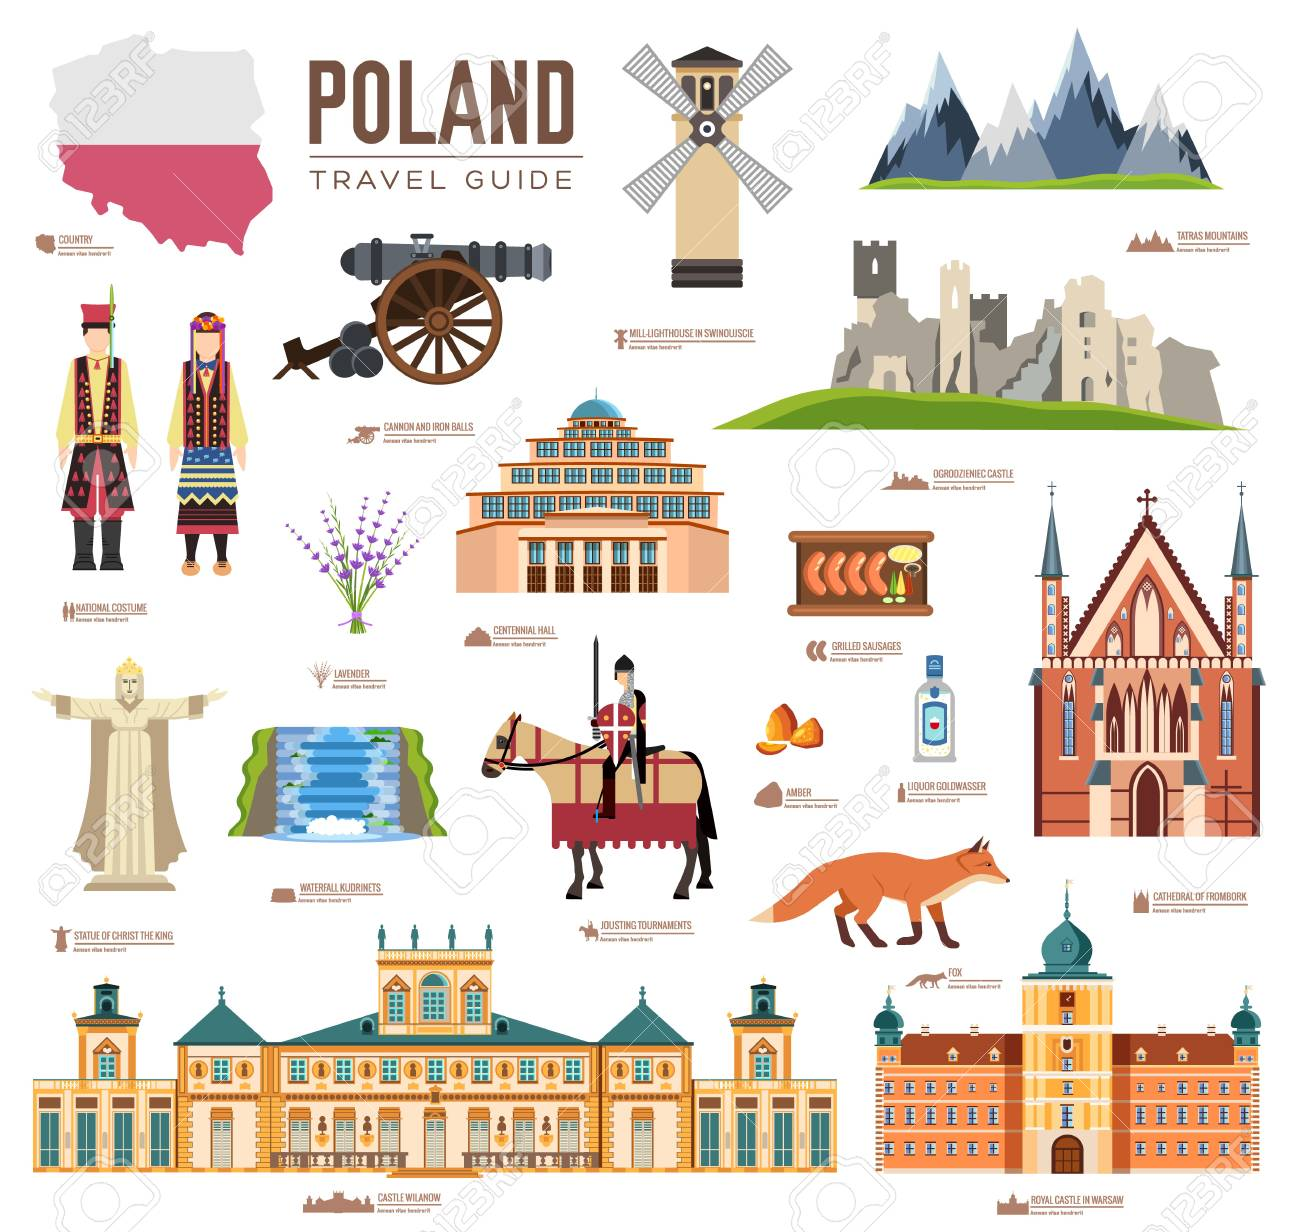 Country Poland travel vacation guide of goods, places and features. Set of architecture, fashion, people, items, nature background concept. Infographic template design on flat style - 117919110